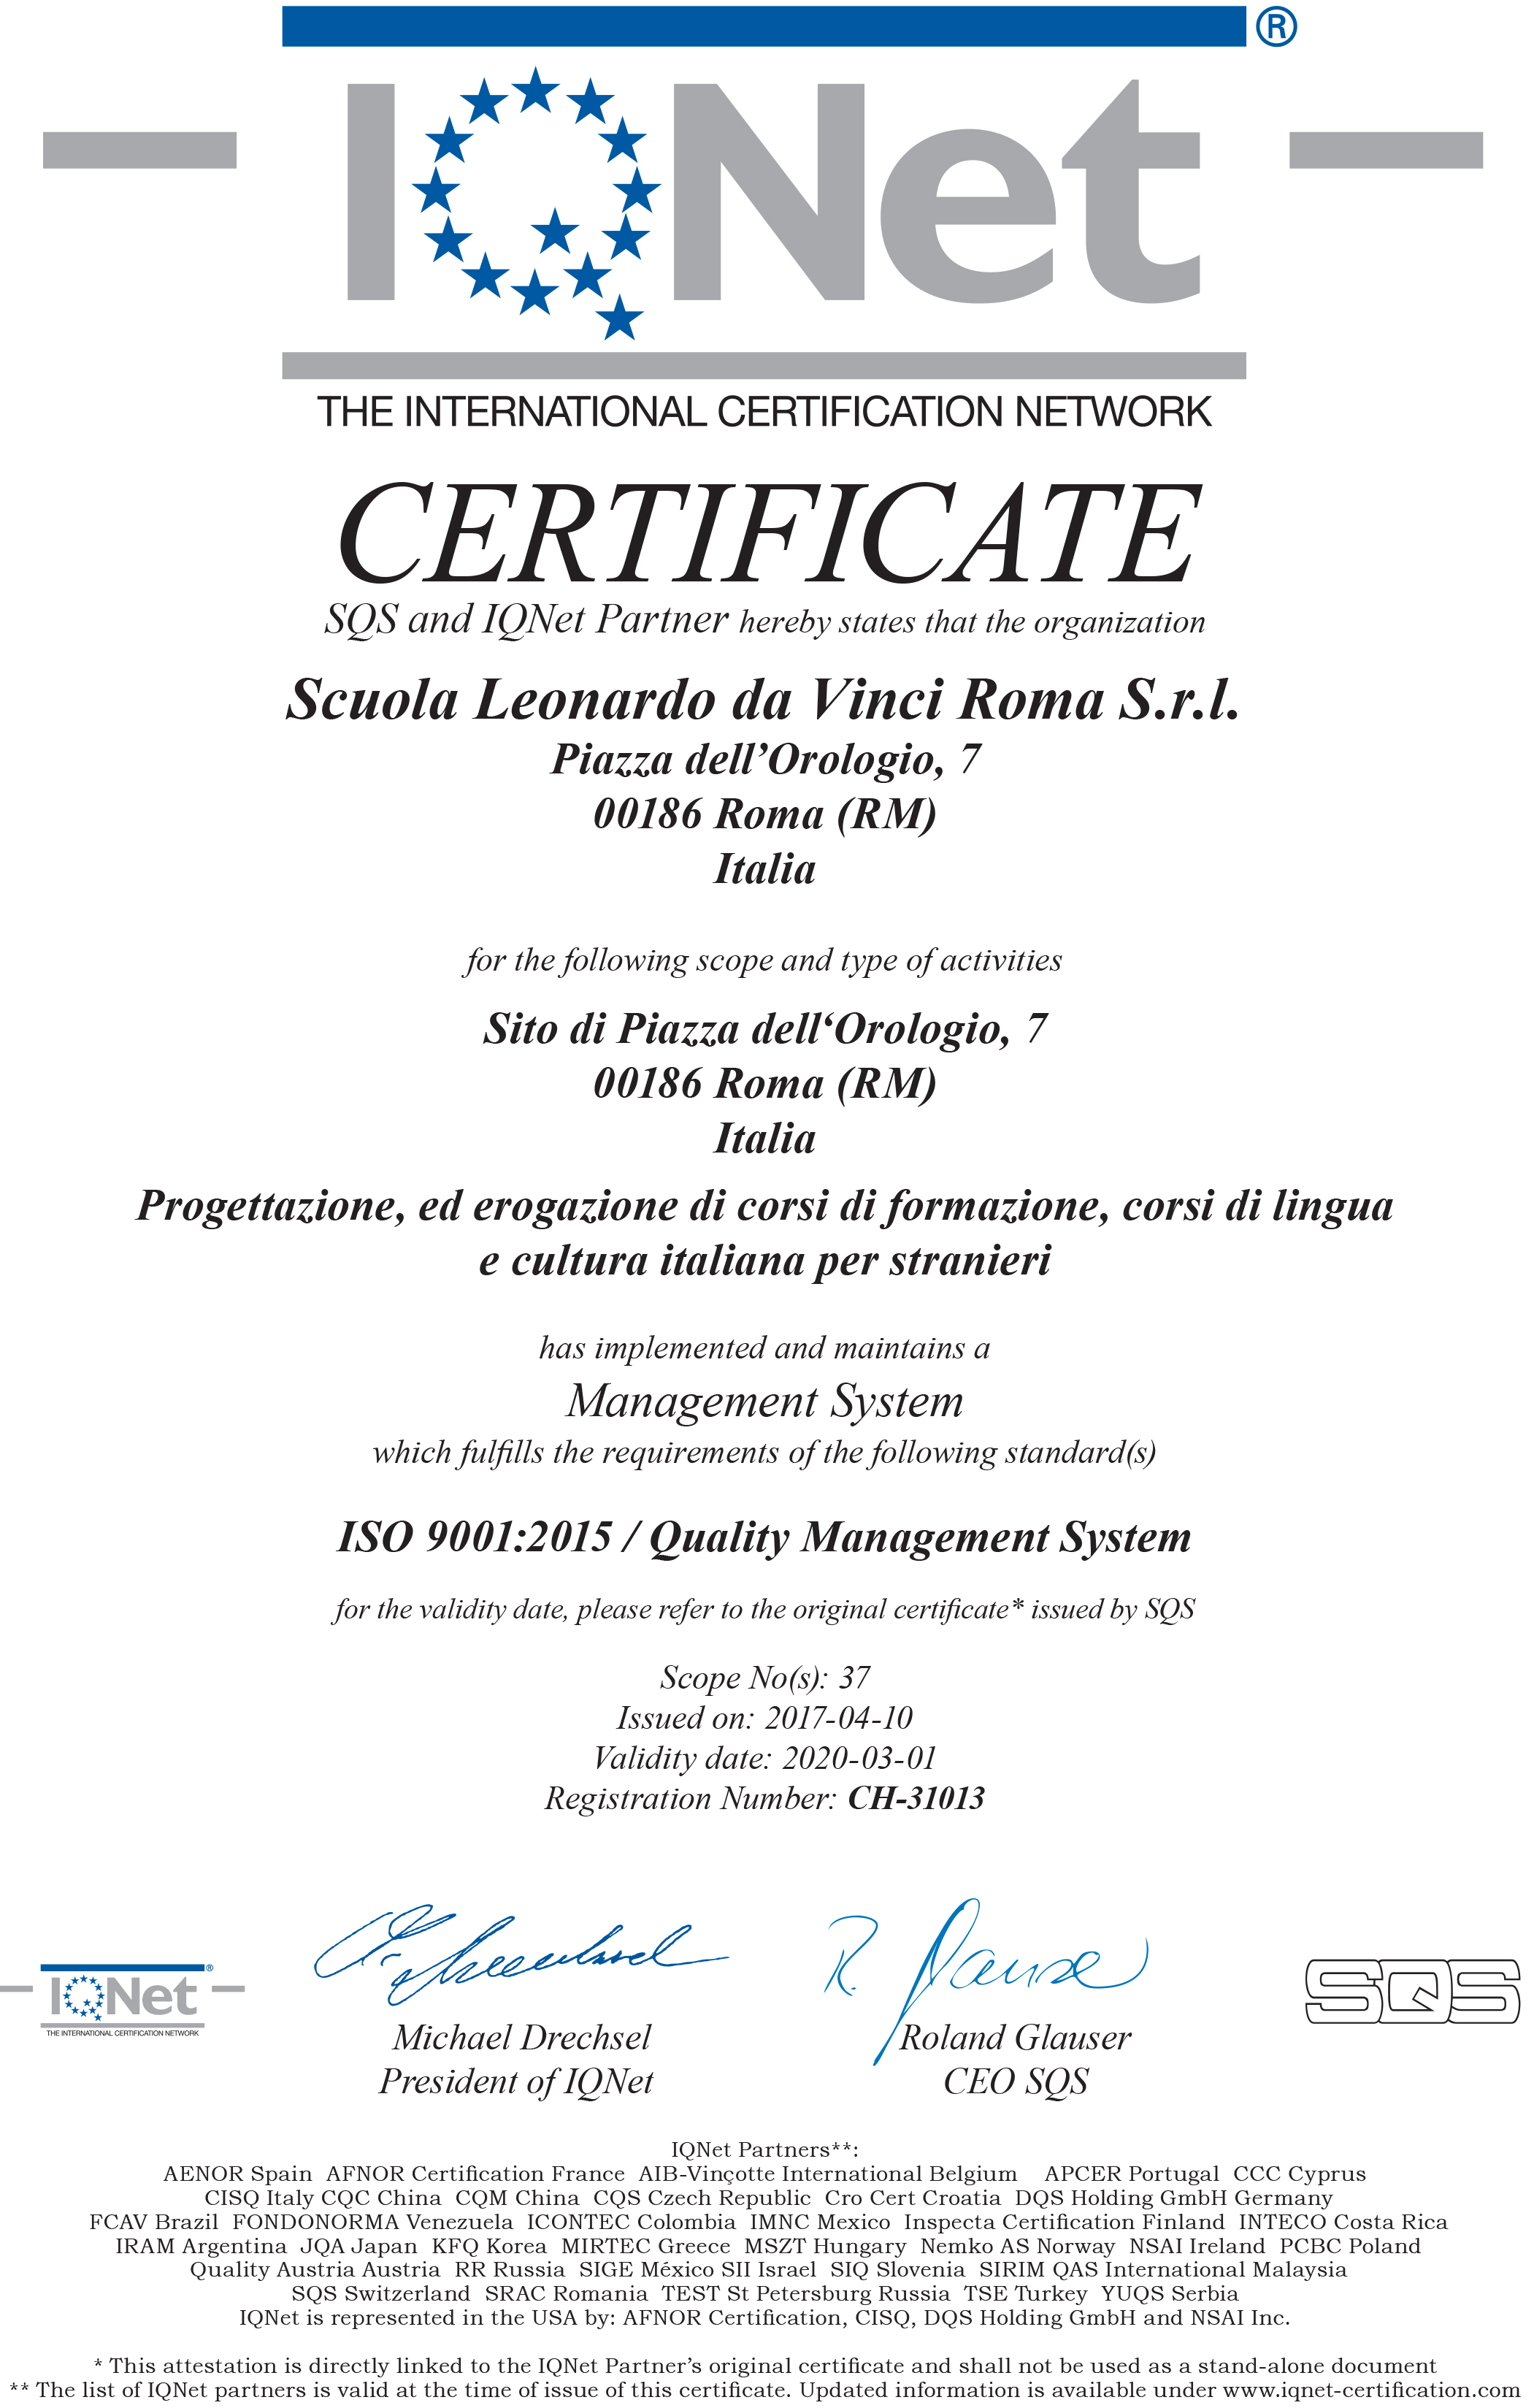 Our Italian school in Rome is certified to meet ISO 9001:2015, the internationally recognized standard for quality management systems